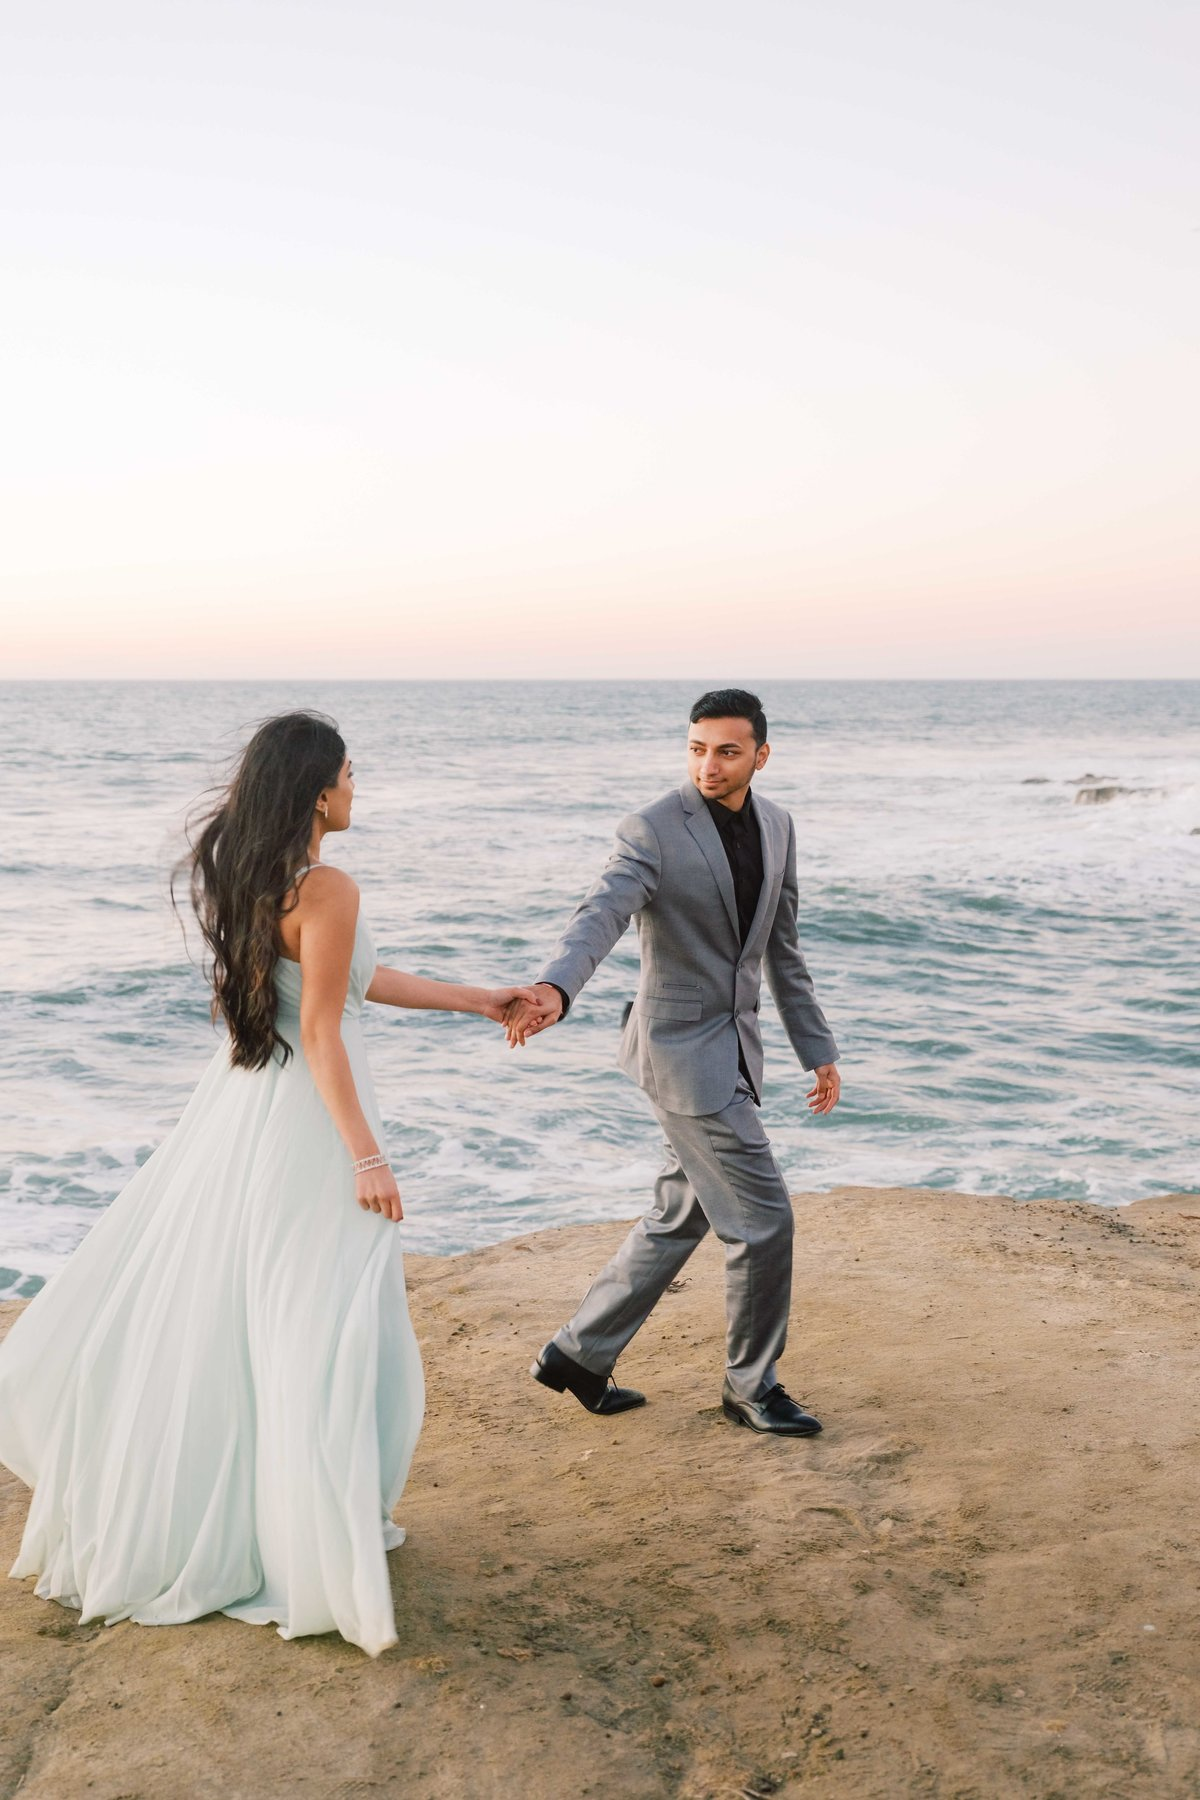 Babsie-Ly-Photography-San-Diego-Proposal-Engagement-Sunset-Cliffs-Indian-Couple-Dog-Surprise-007